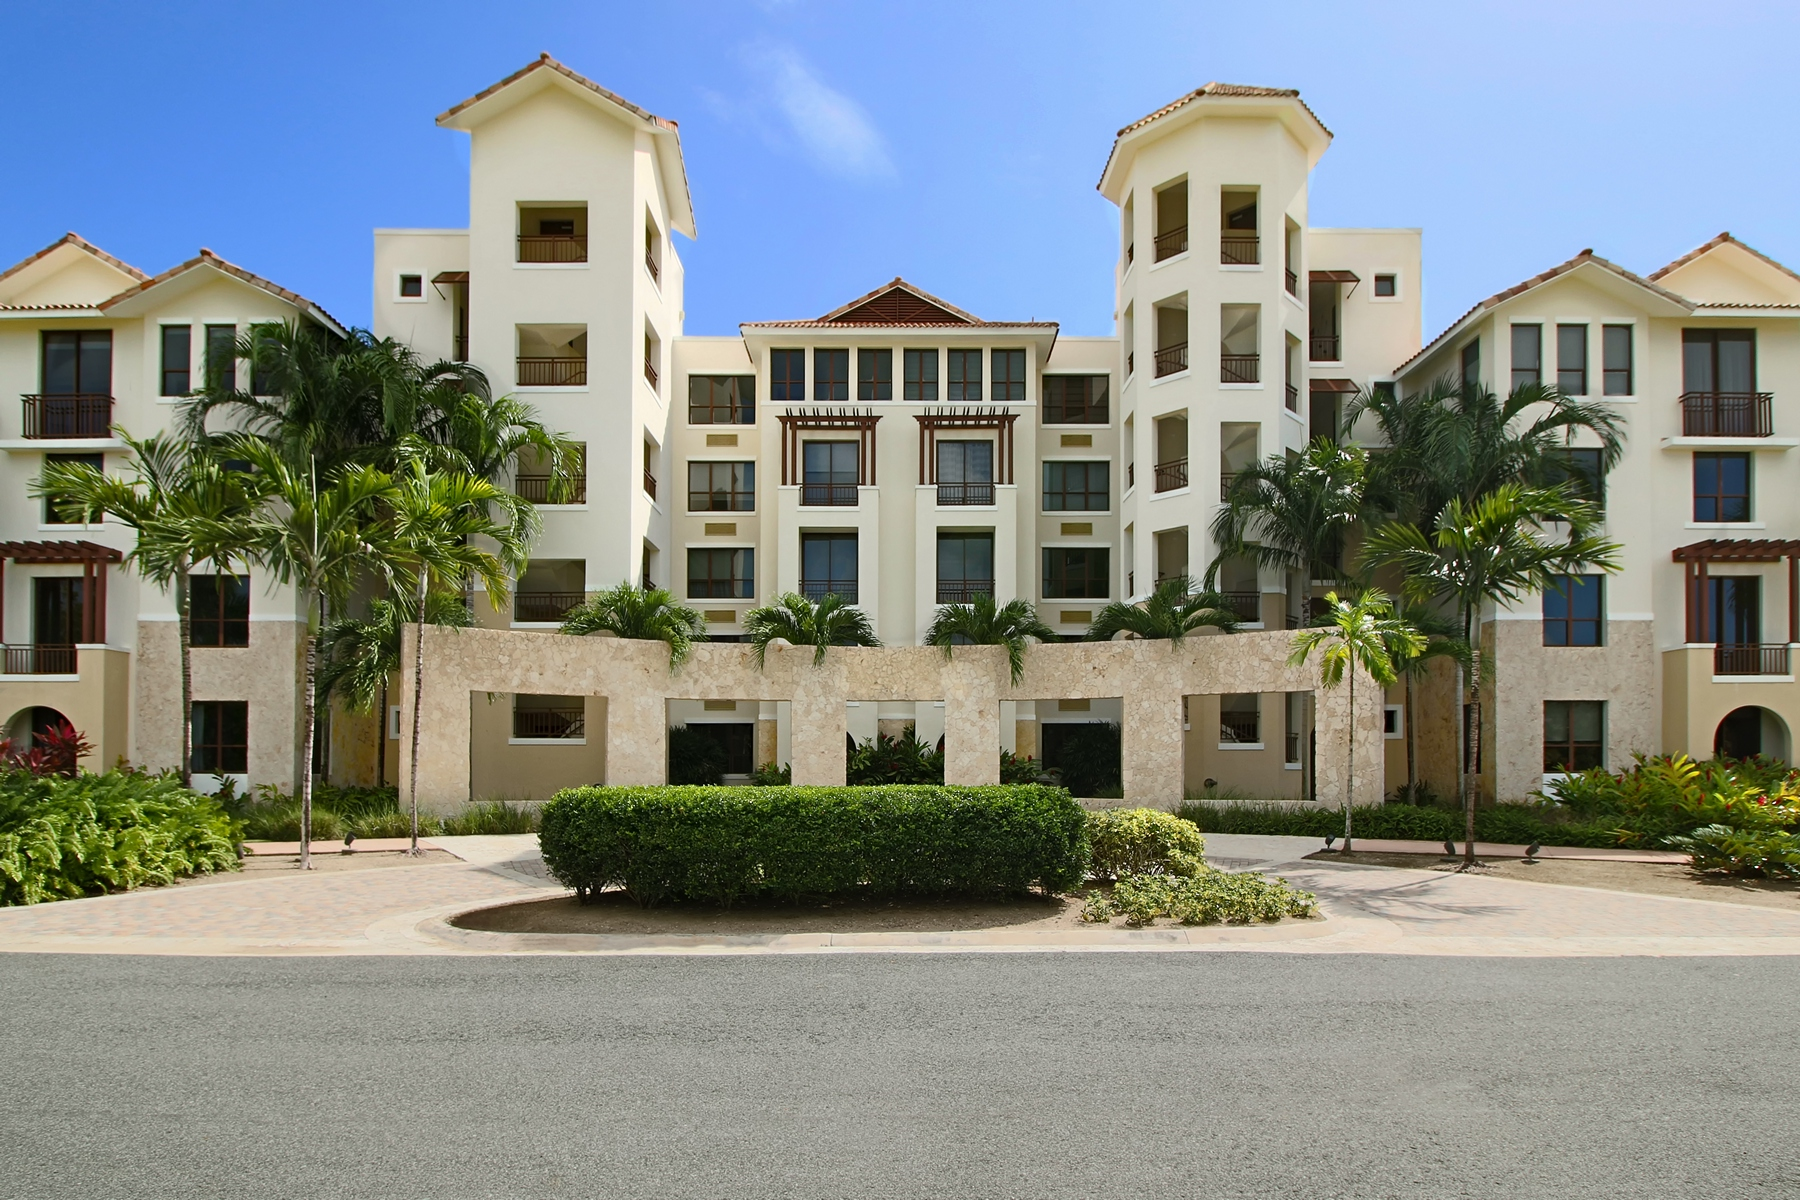 Additional photo for property listing at Residence 144 at 238 Candelero Drive 238 Candelero Drive, Apt 144 Solarea Beach Resort and Yacht Club Palmas Del Mar, 波多黎各 00791 波多黎各